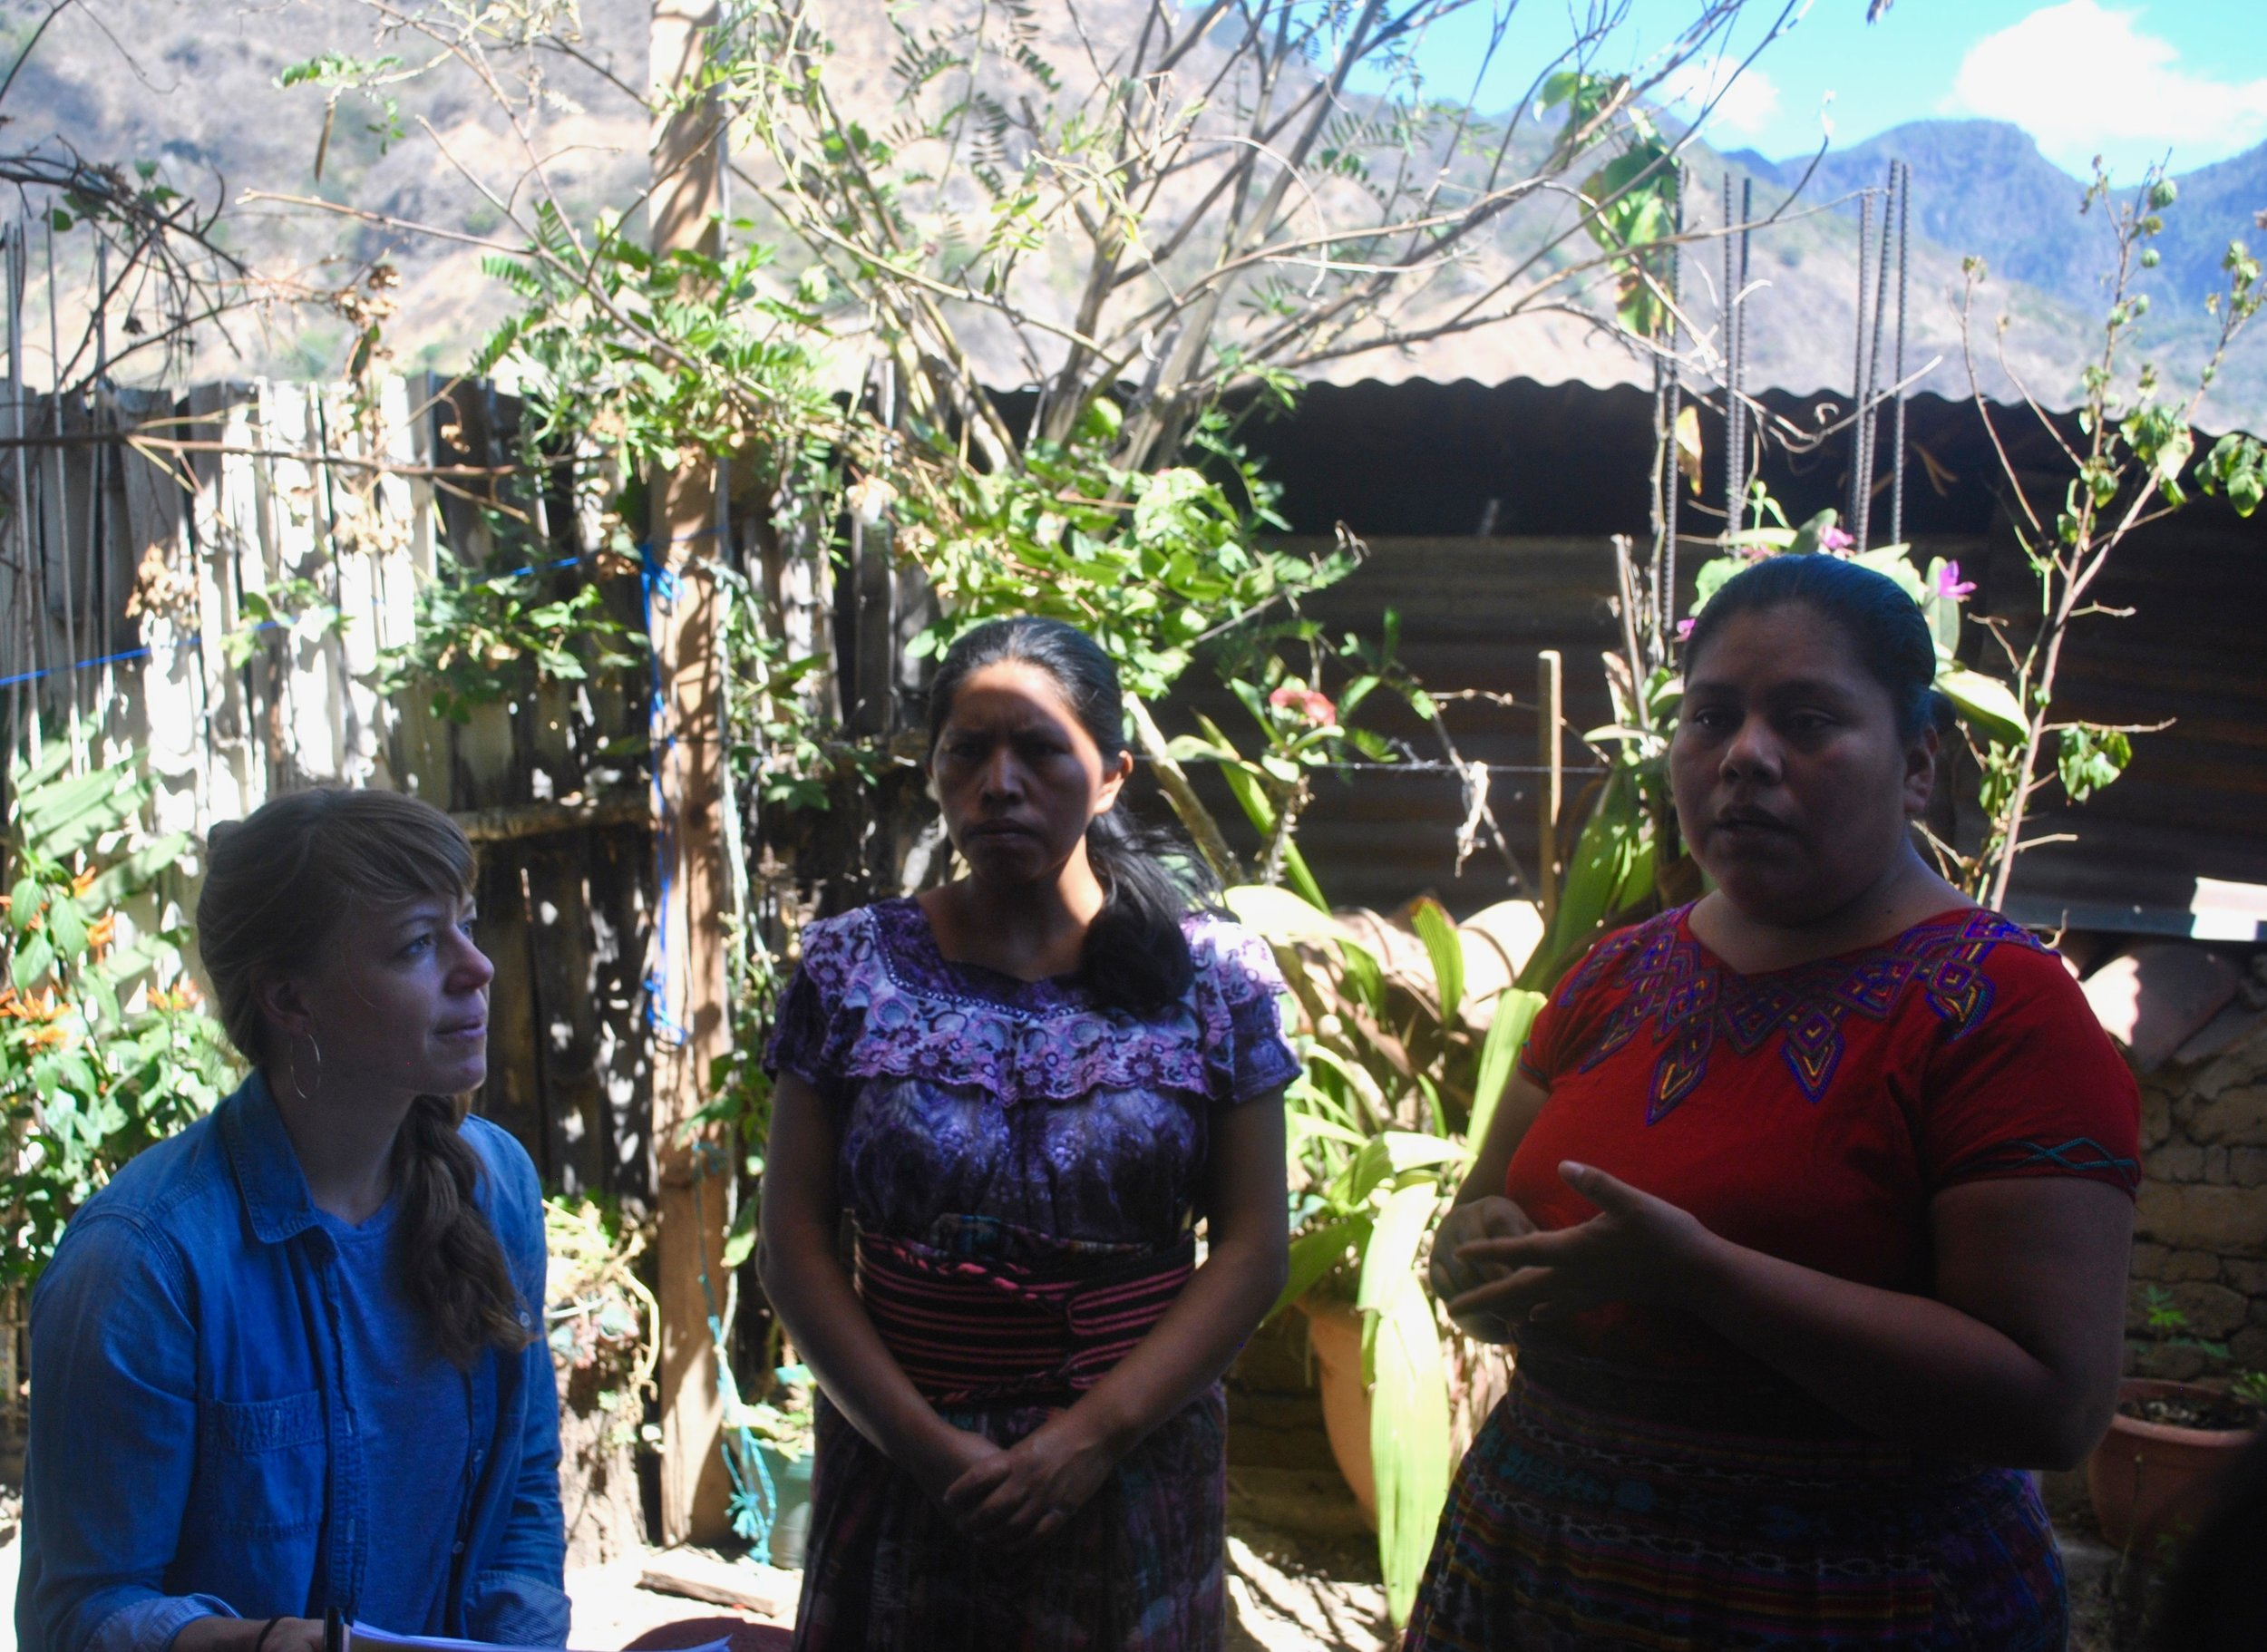 Amanda Zehner (Founder & CEO) discussing product development with Amalia and Alejandra at Tinte Maya.